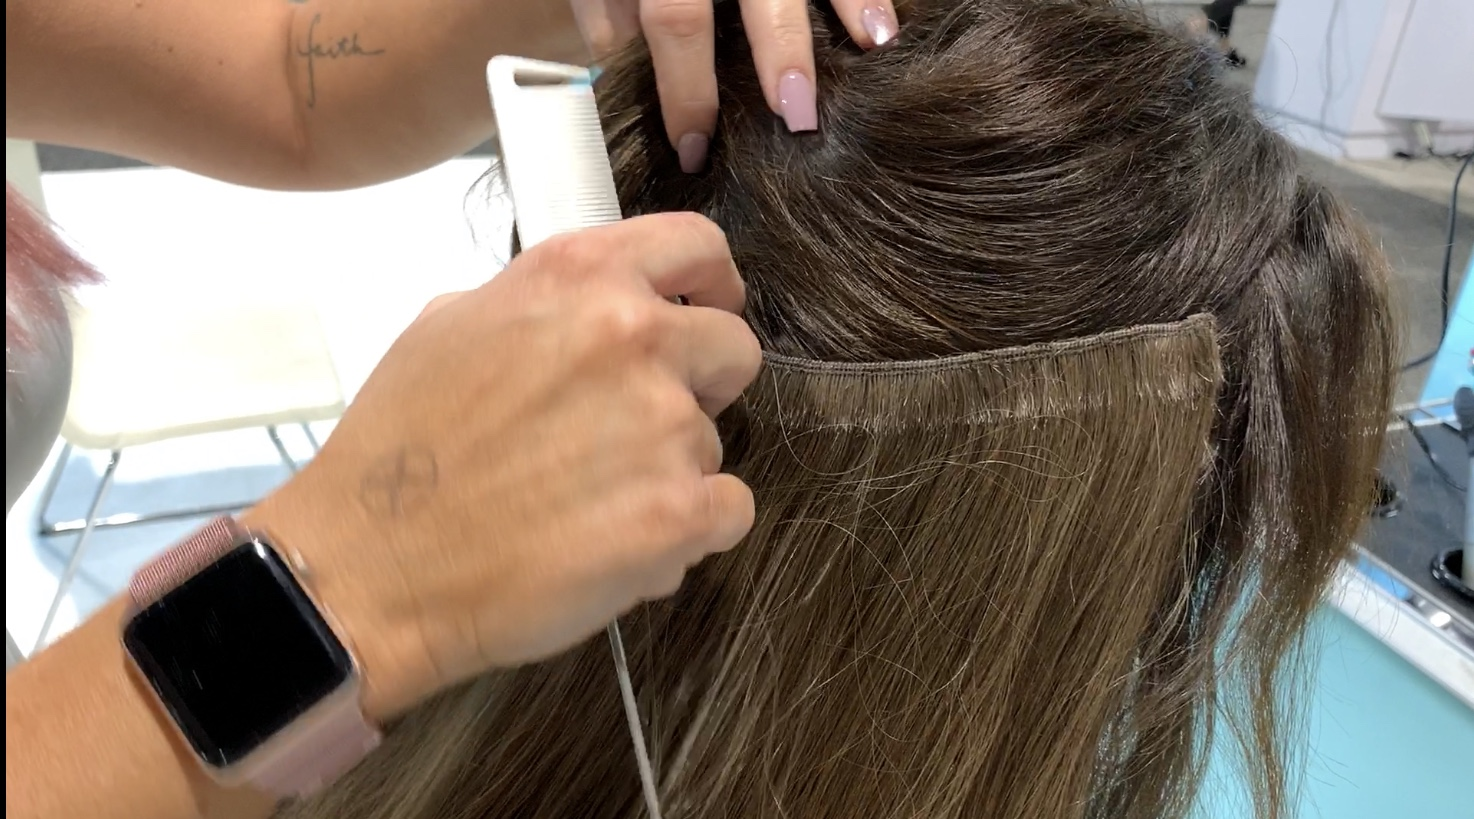 How-to install a Halo Couture extension.